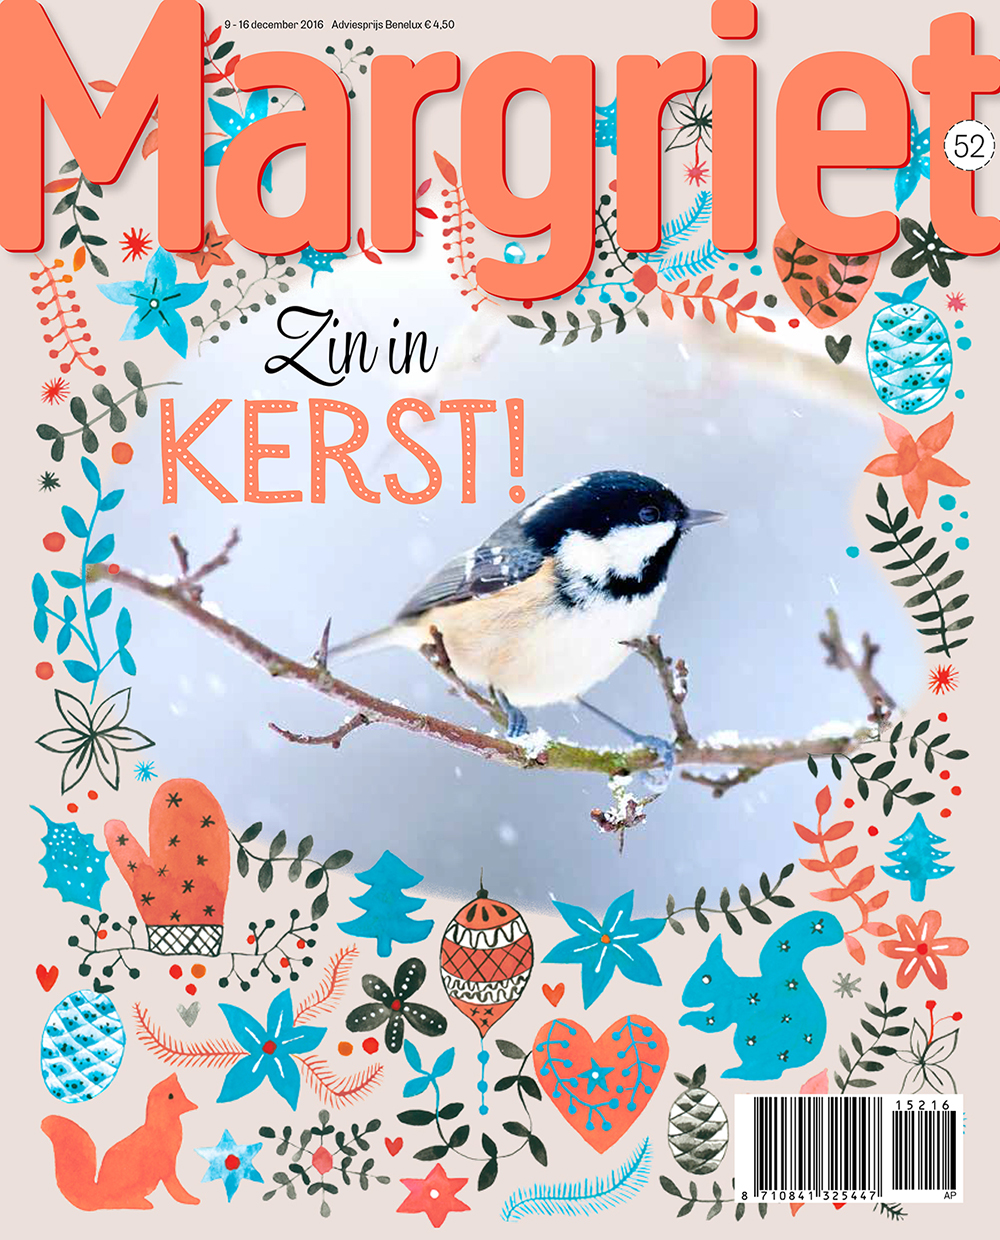 Margriet Christmas Cover by Marenthe.jpg